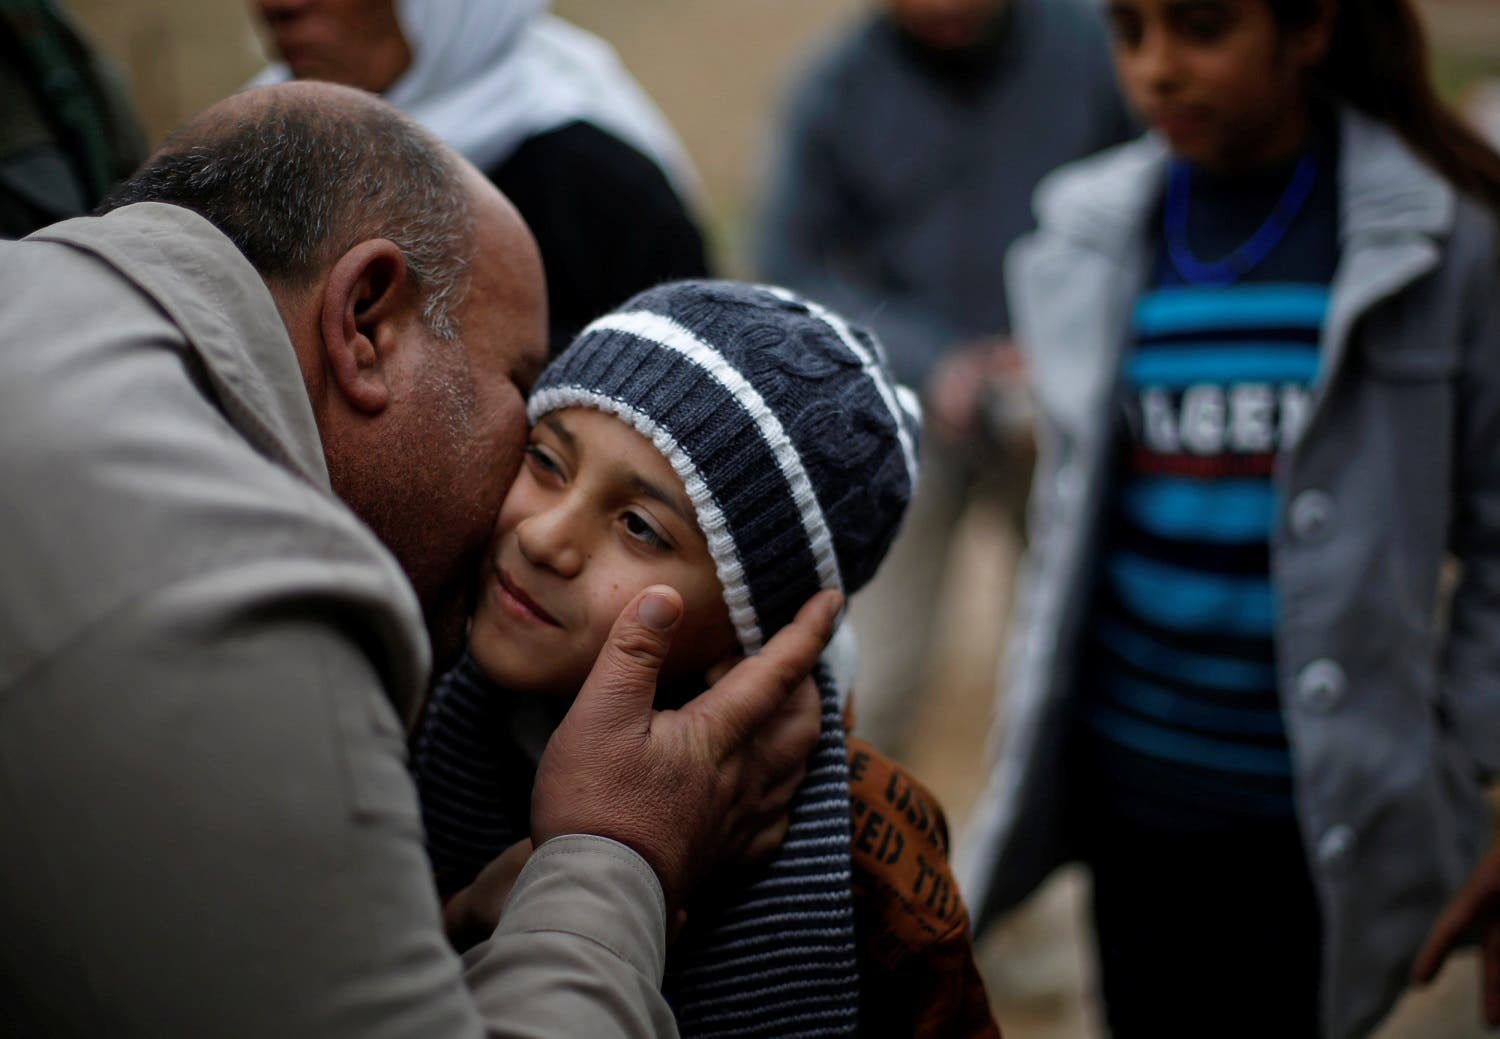 Ayman is greeted by his relative after he was returned to his Yazidi family in Duhok, Iraq. (Reuters)